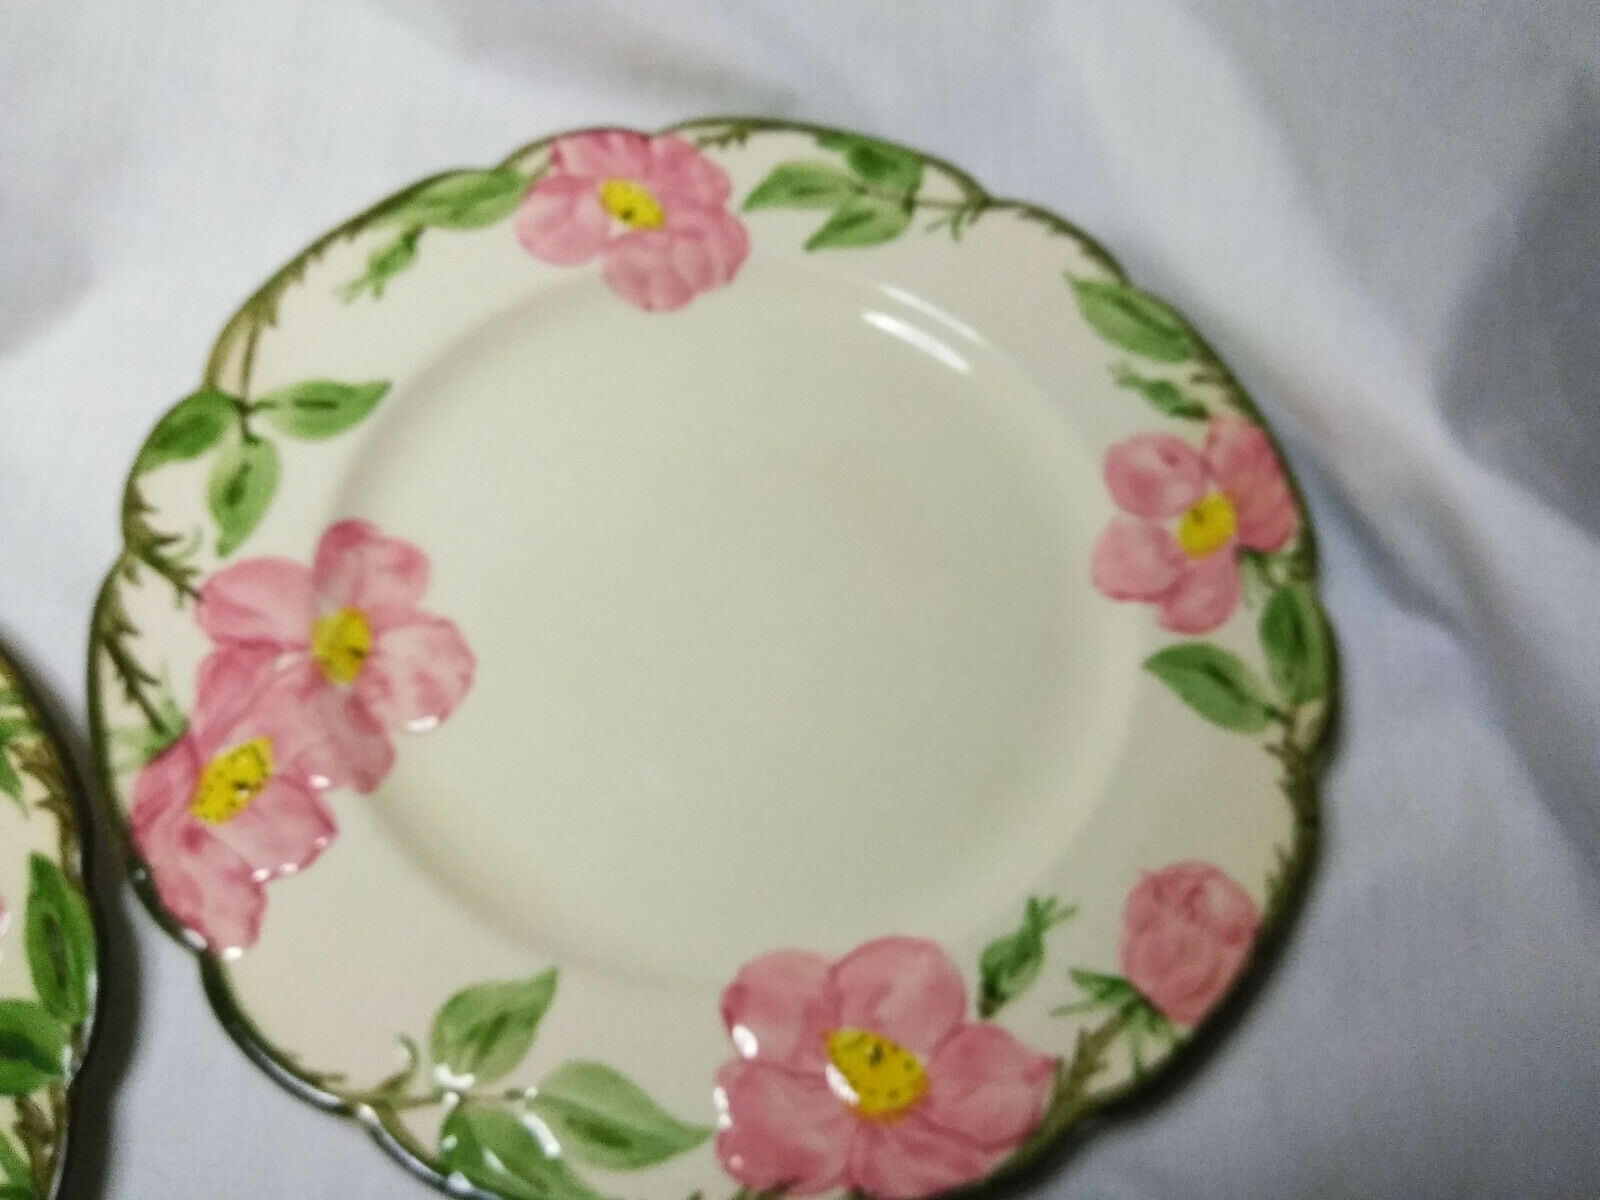 Vintage Franciscan China Desert Rose 4 piece plate set 3 size plates and 1 bowl